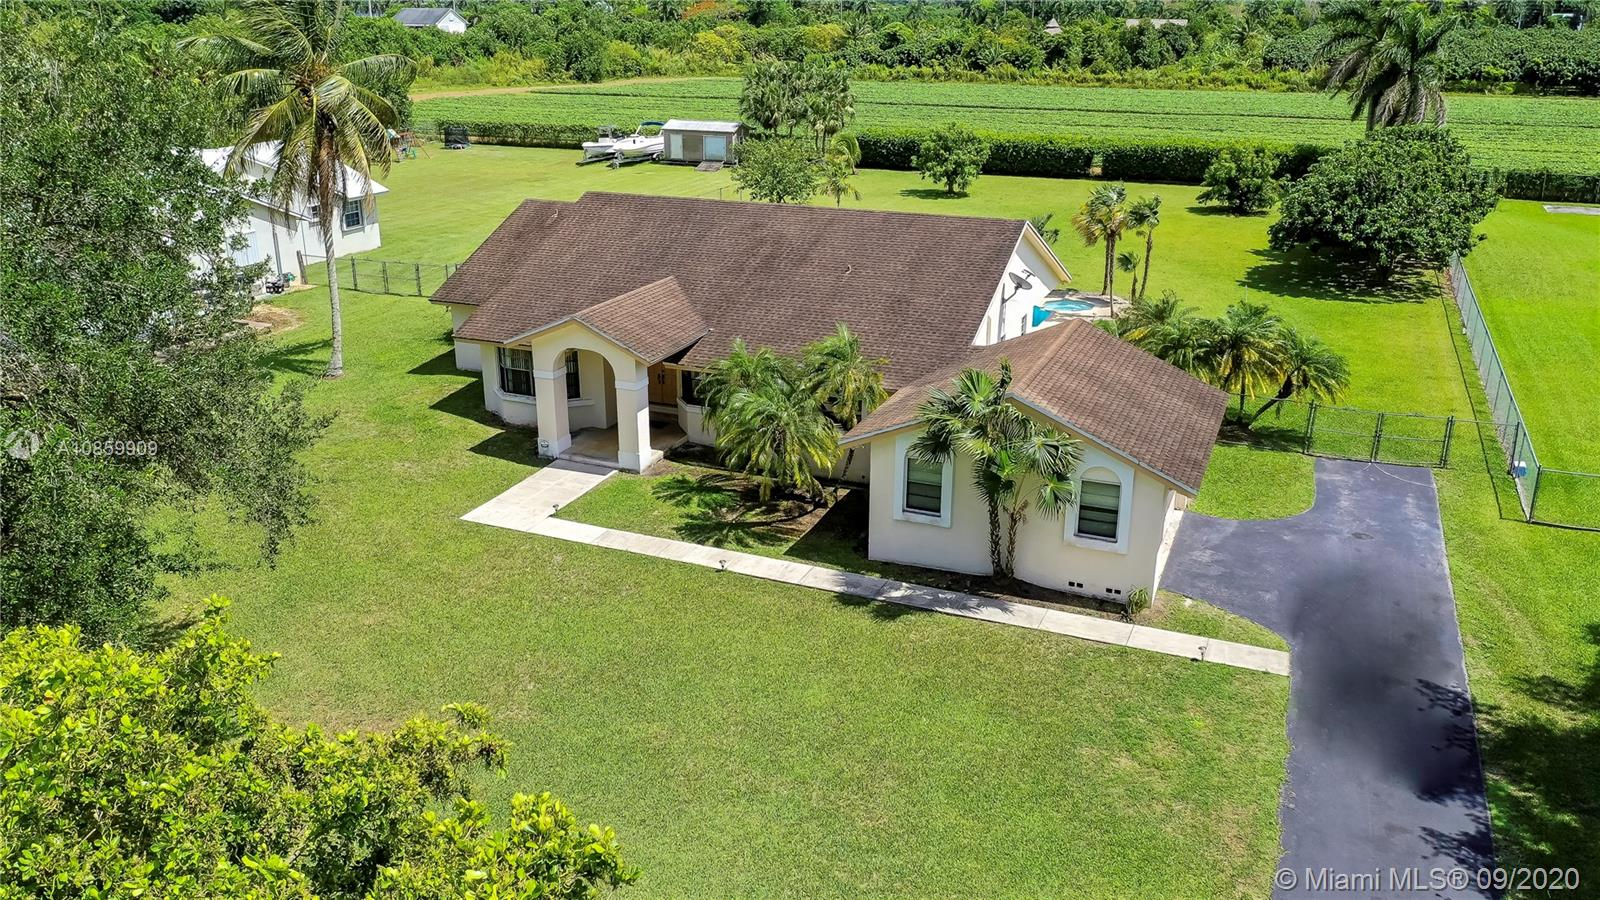 18450 Sw 244 St Property Photo